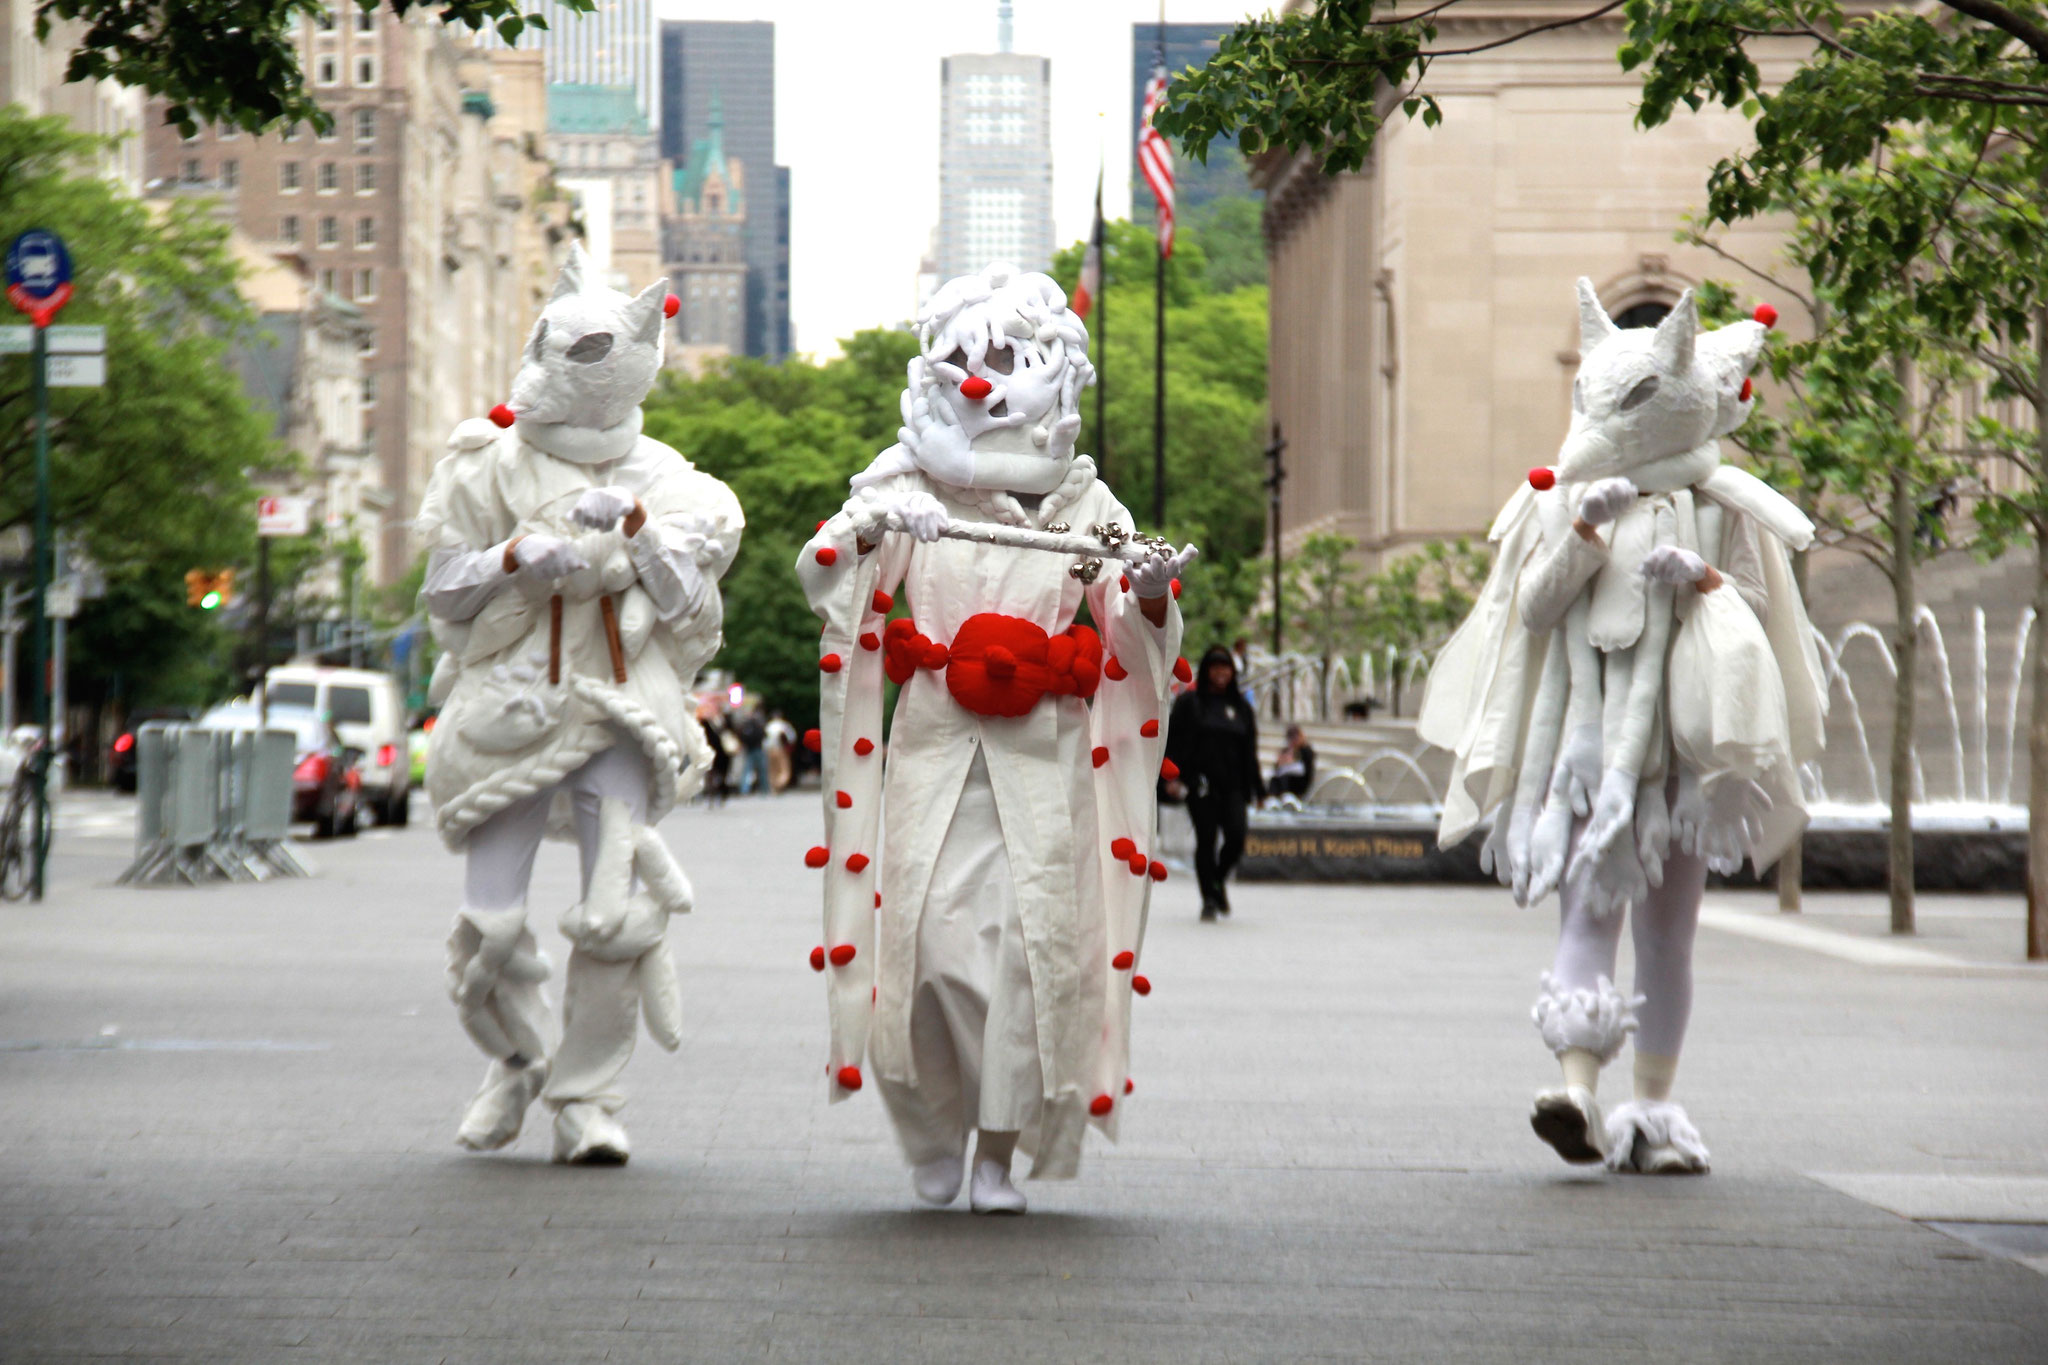 Parade -The circus-, May 18th, 2016 at National Academy Museum and Fifth avenue